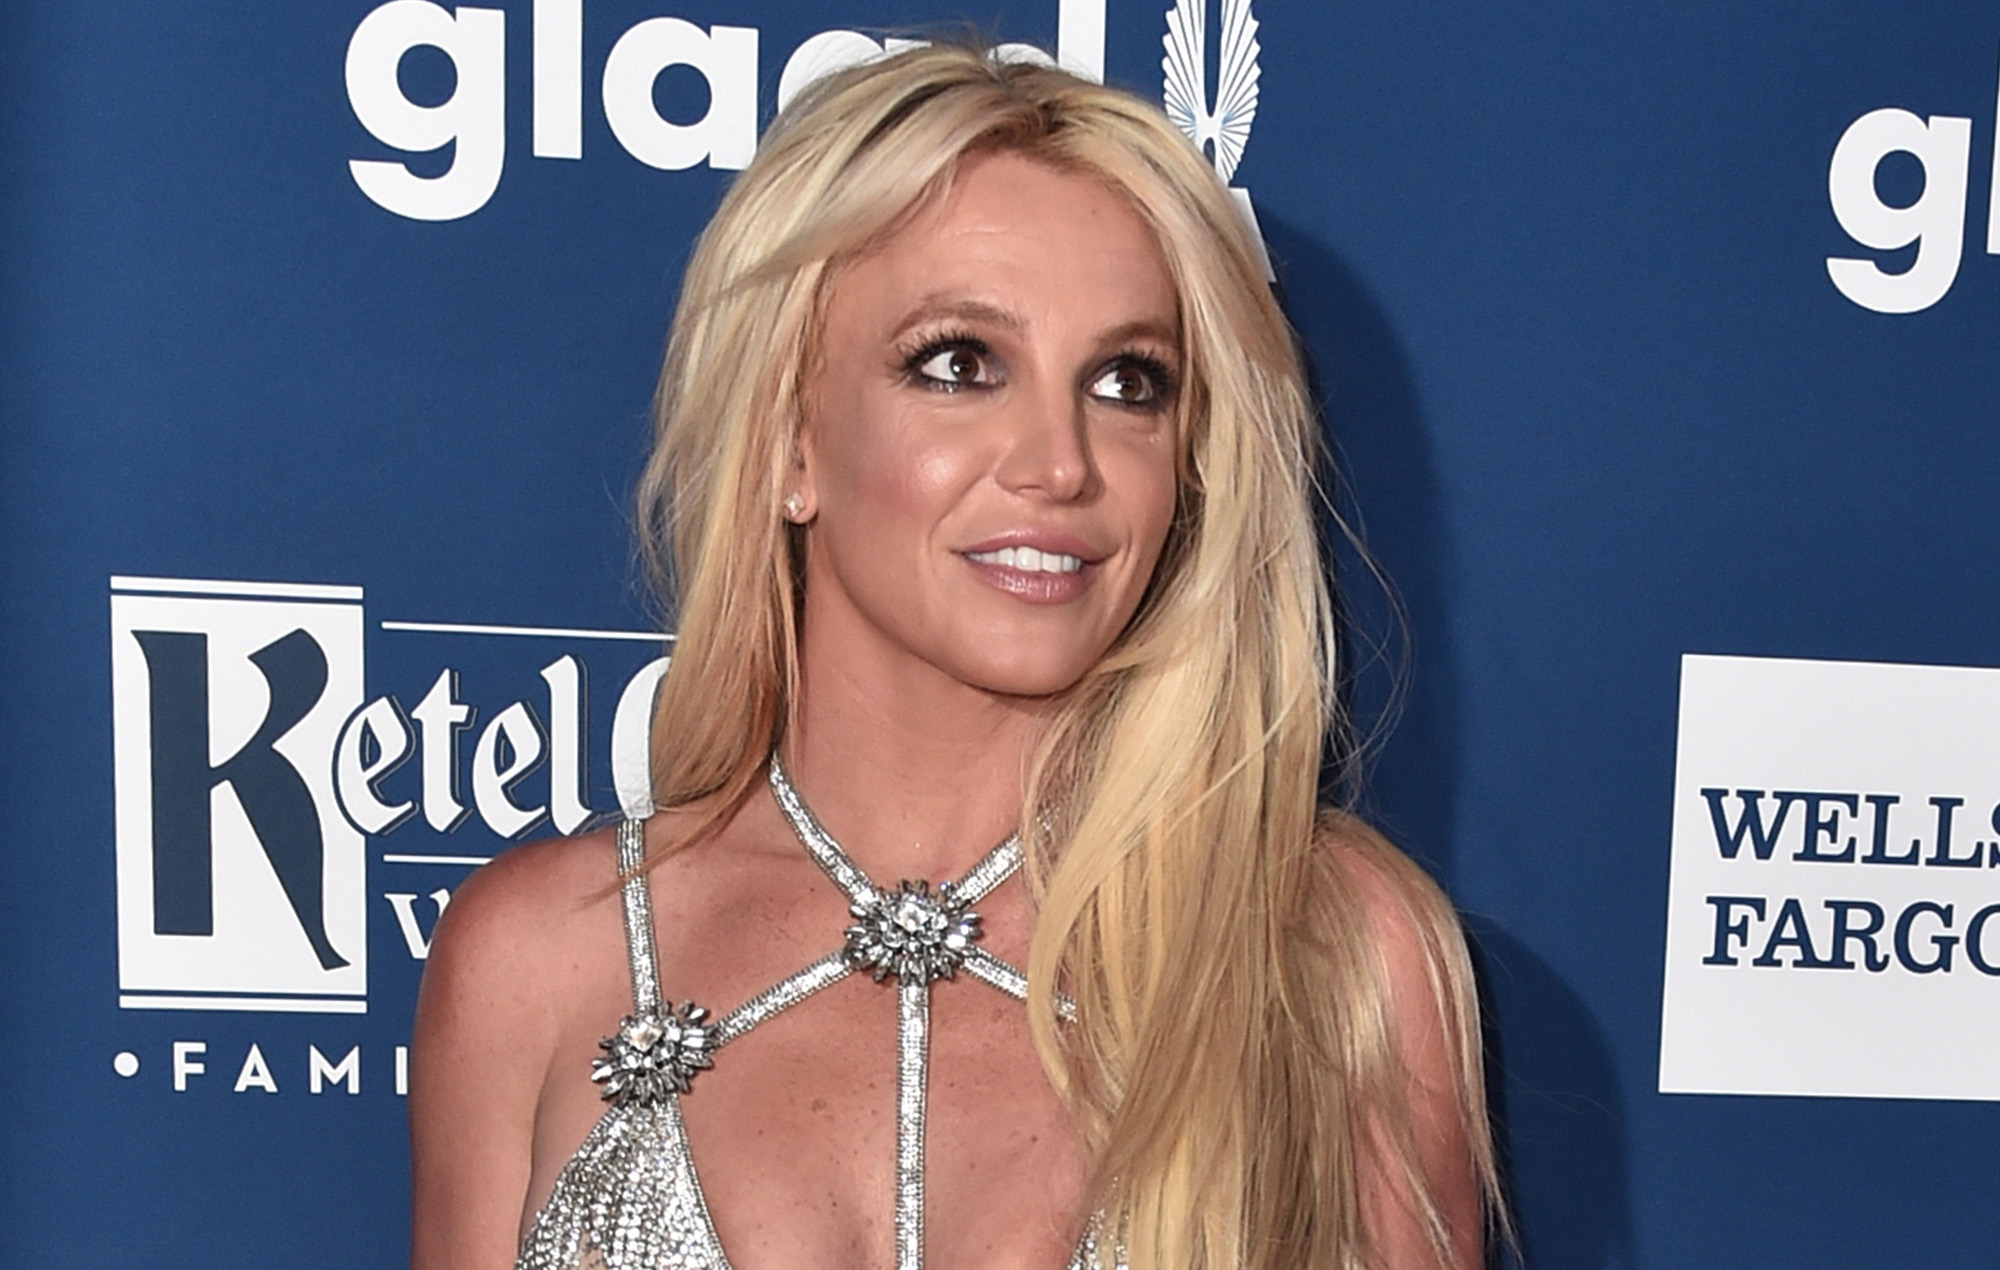 Britney Spears will not face charges following battery allegations by employee